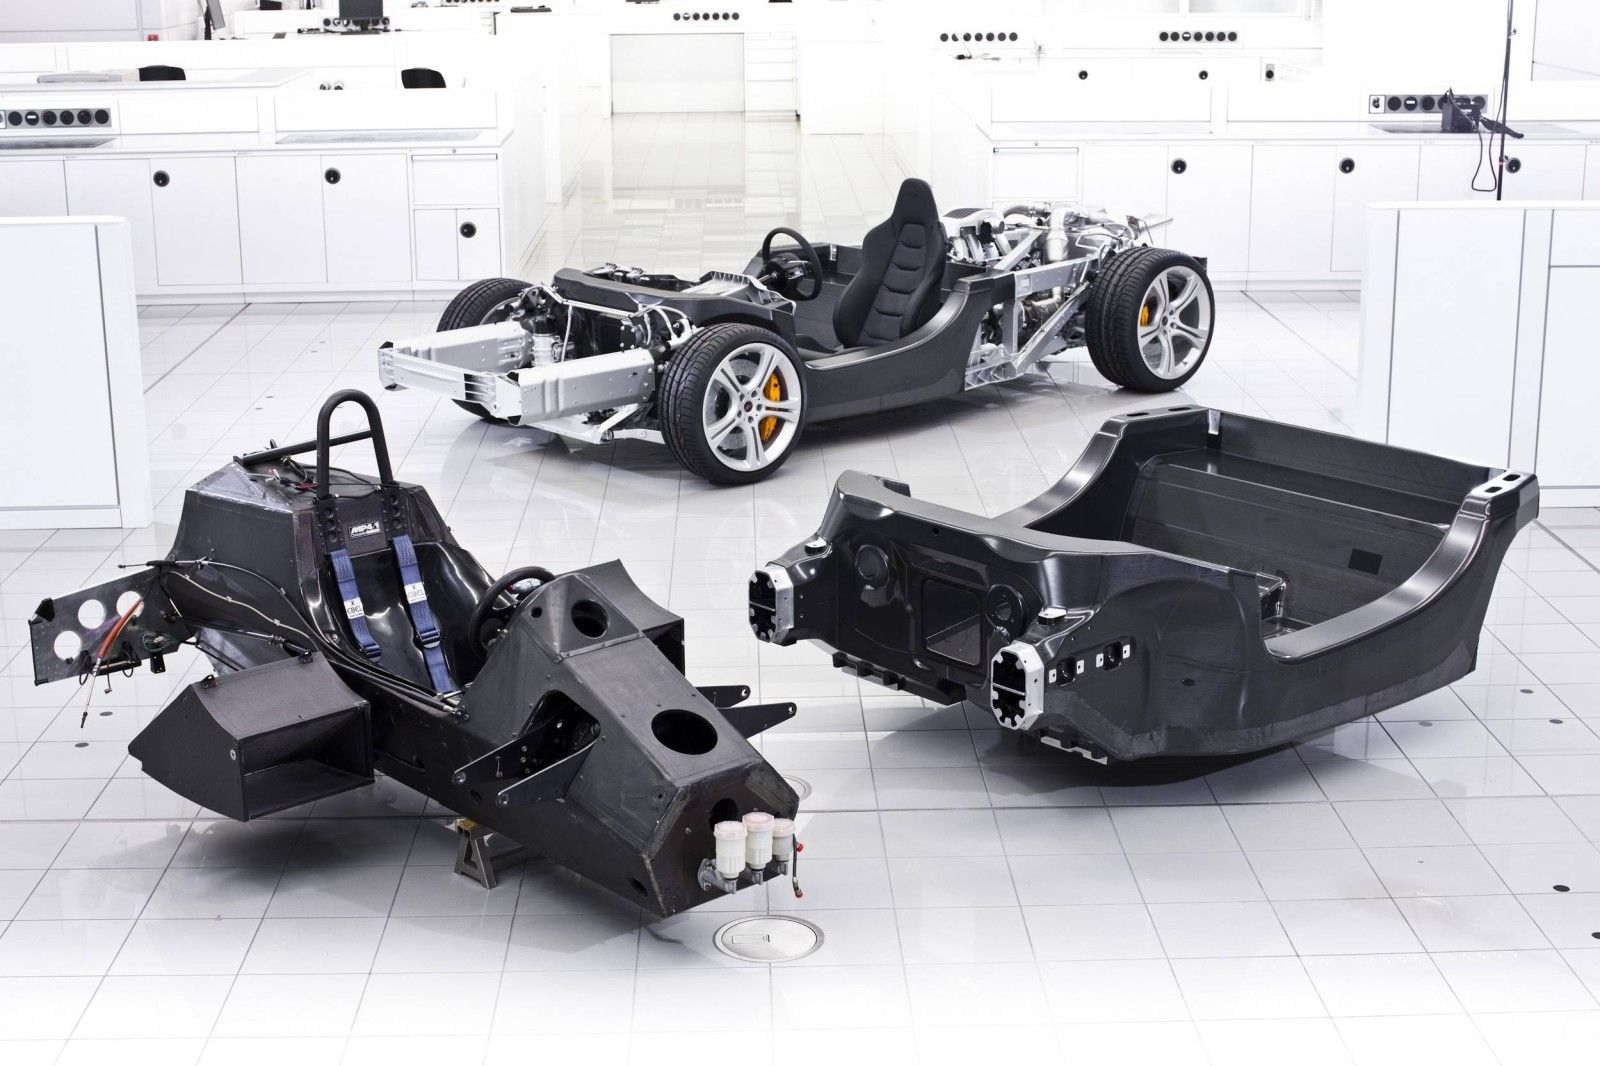 Chassis design of f1 car - F1 Car Frame Google Search